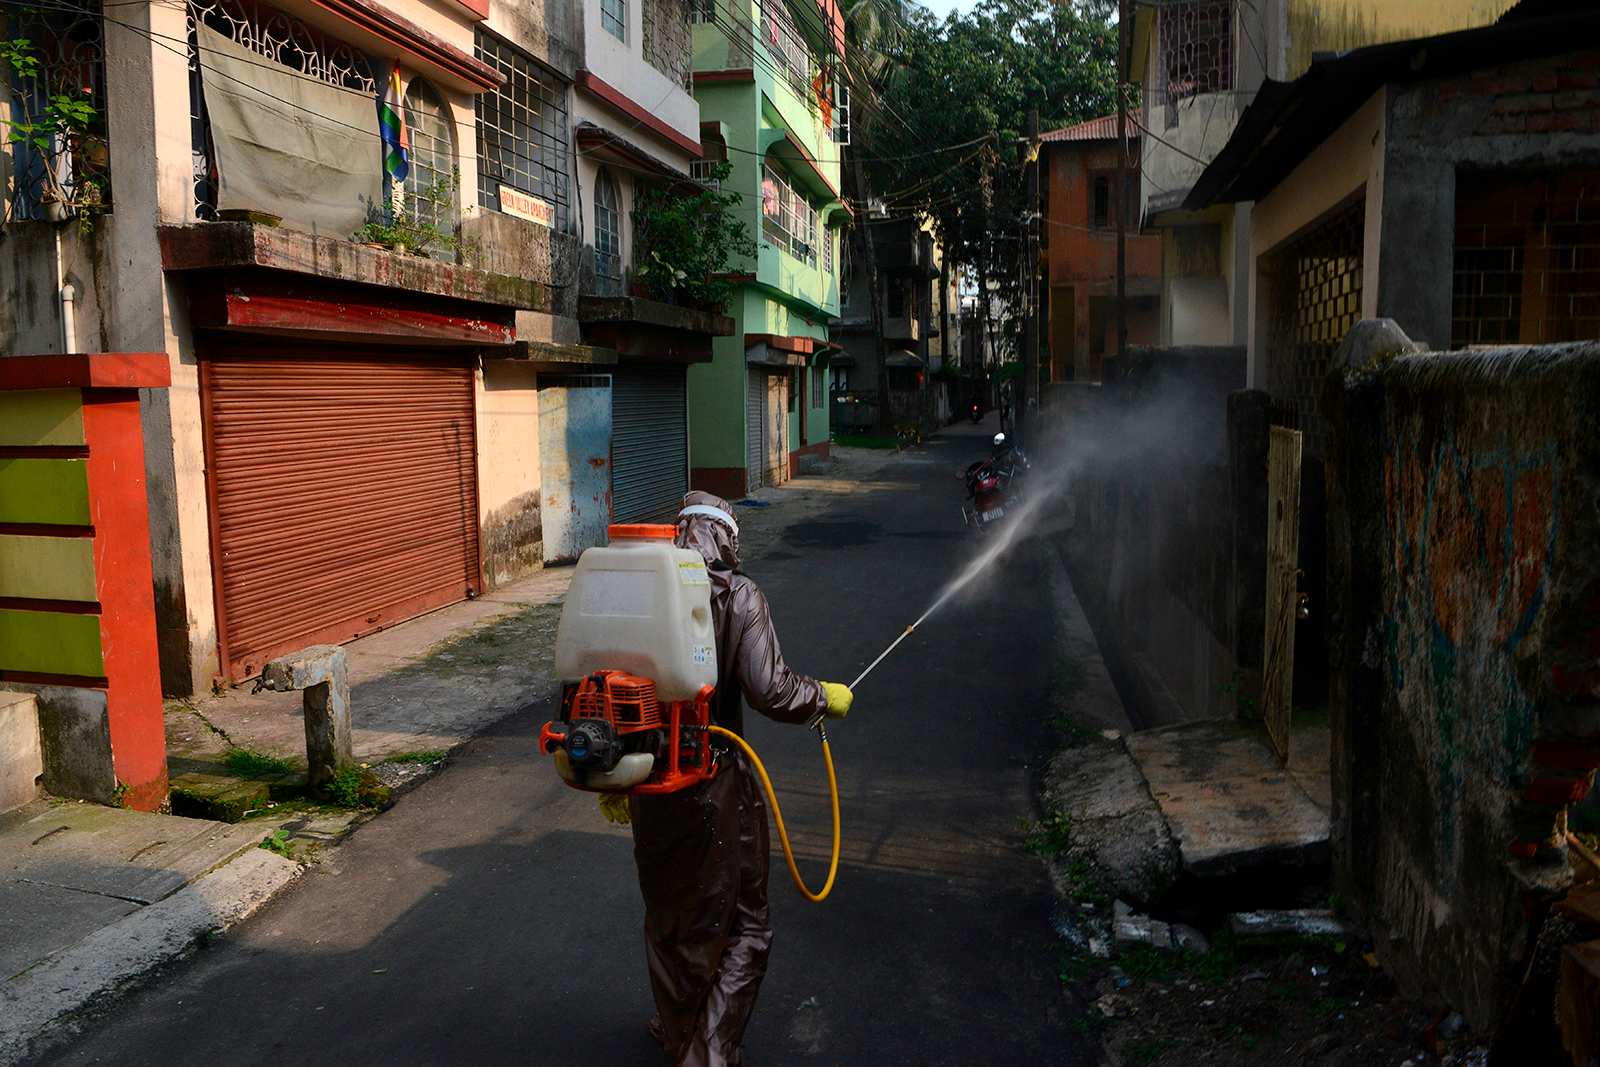 A municipal worker sprays disinfectant in an alley where a patient had tested positive for the coronavirus in Siliguri, India on May 18.